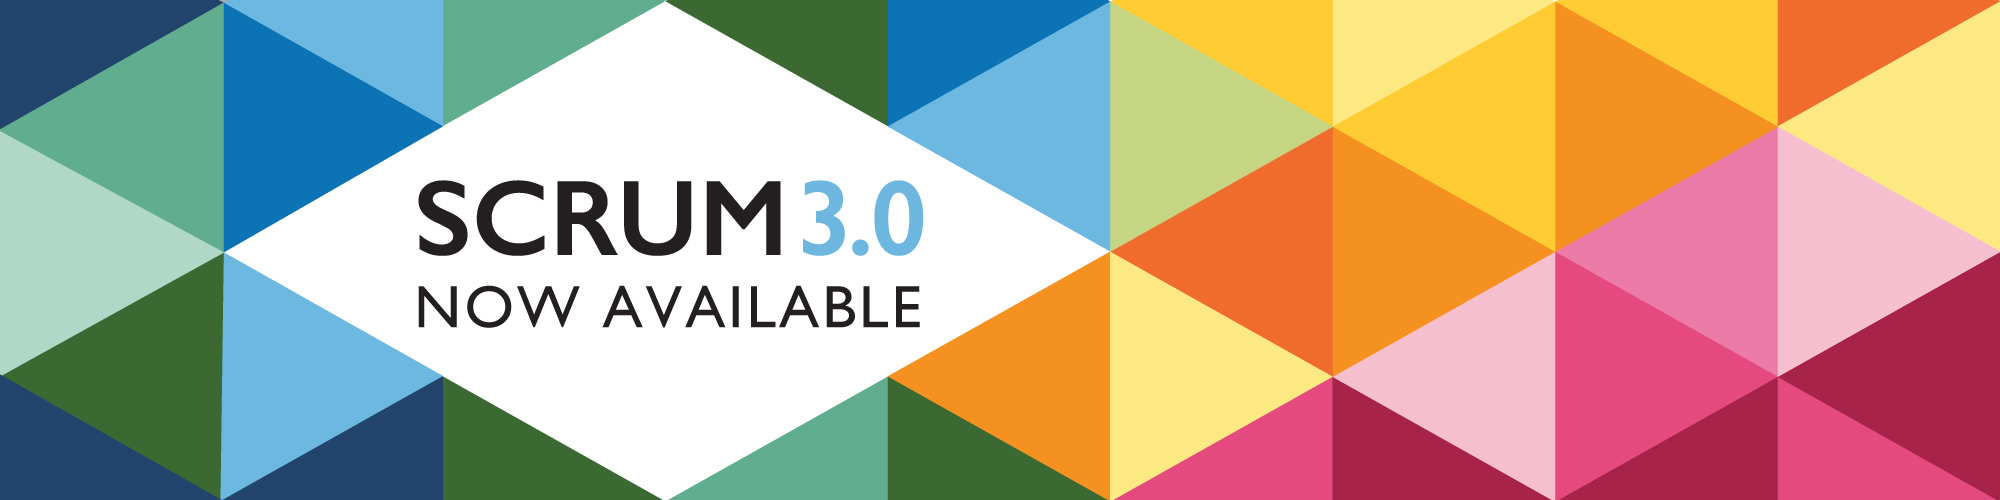 Scrum 3.0 White Paper Download Now